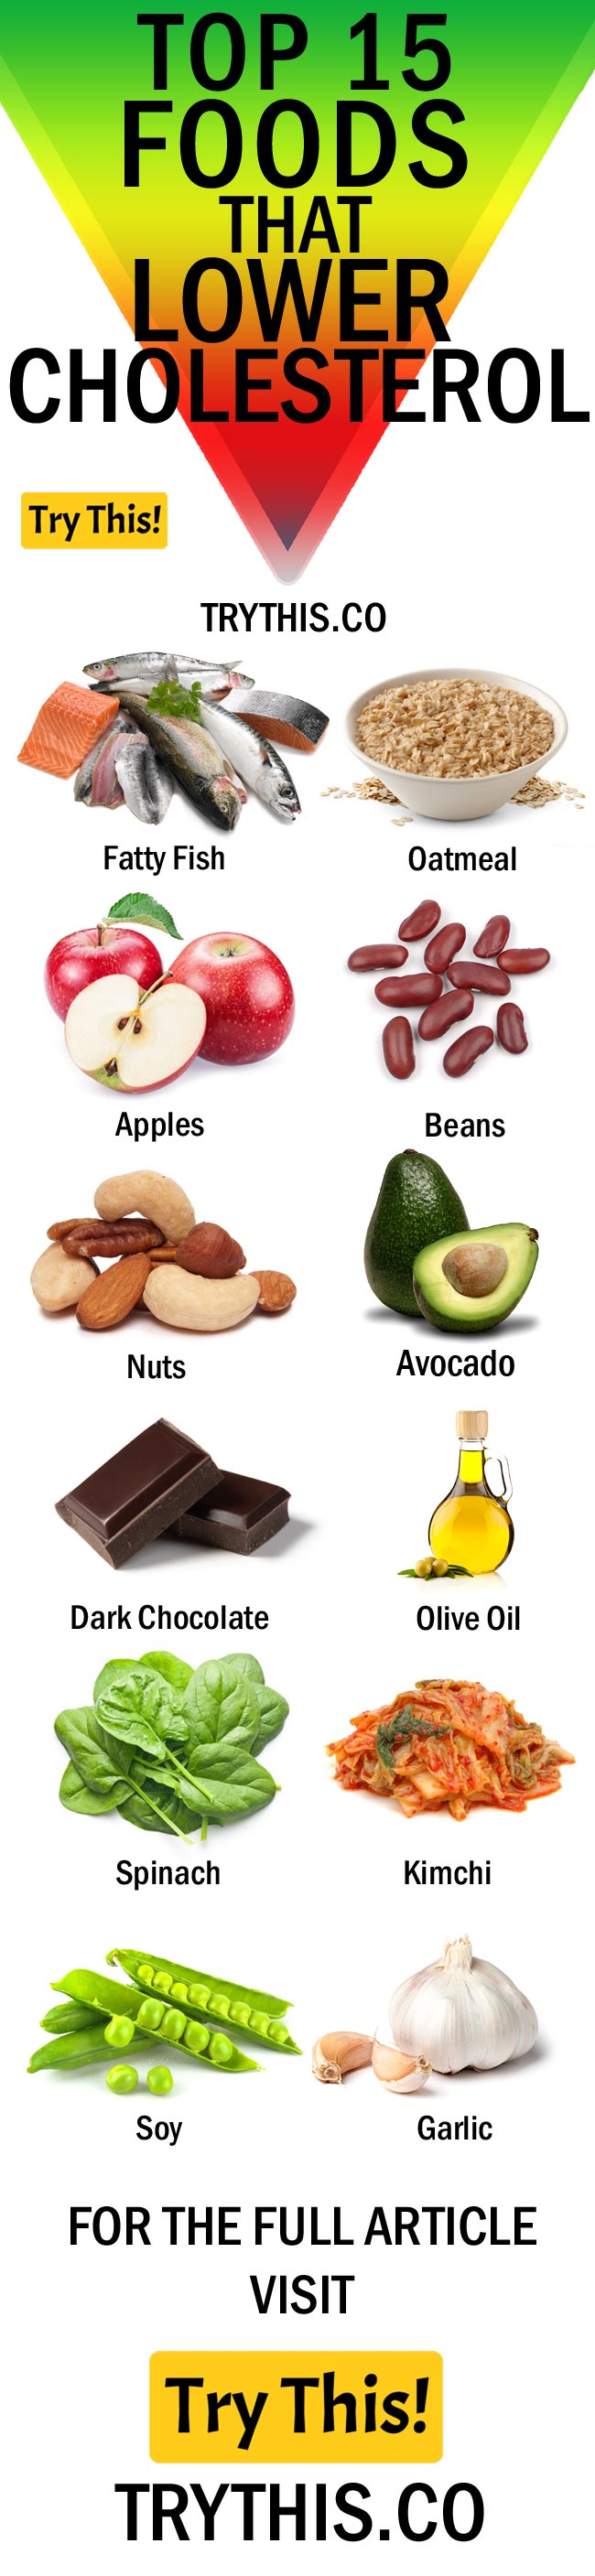 Top 15 Foods That Lower Cholesterol